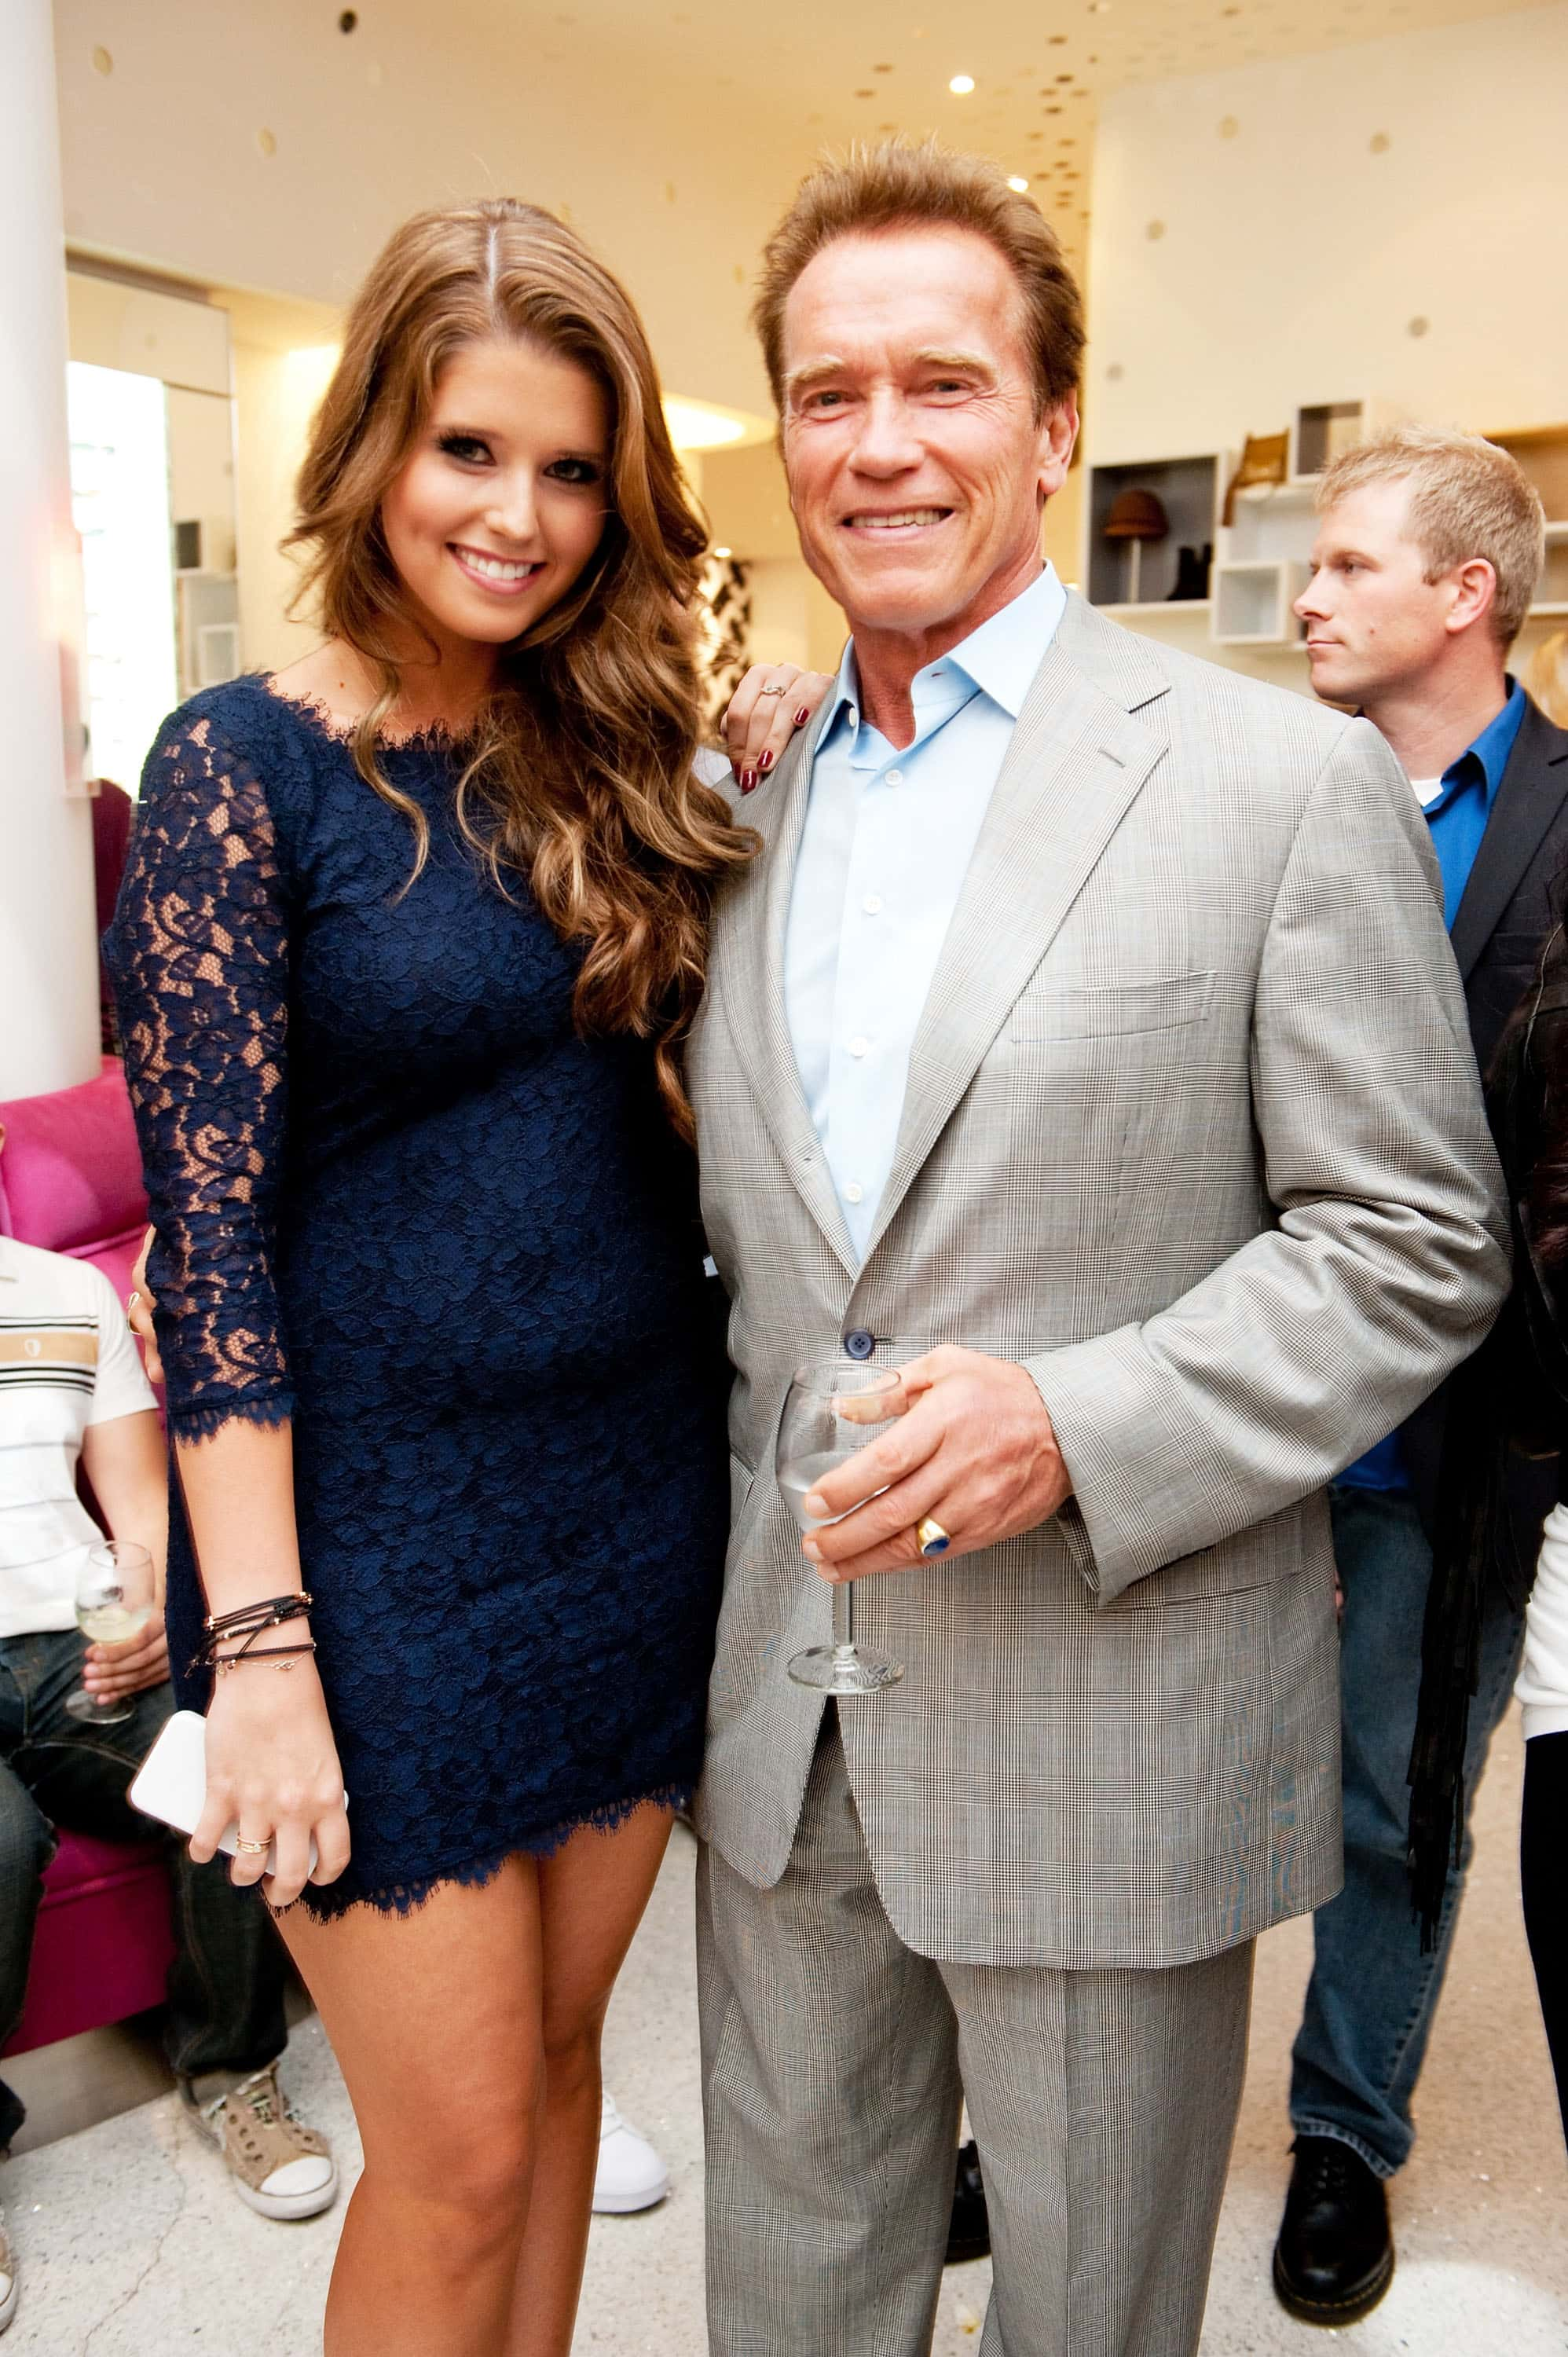 Katherine Schwarzenegger seen here with father Arnold Schwarzenegger (Getty Images)